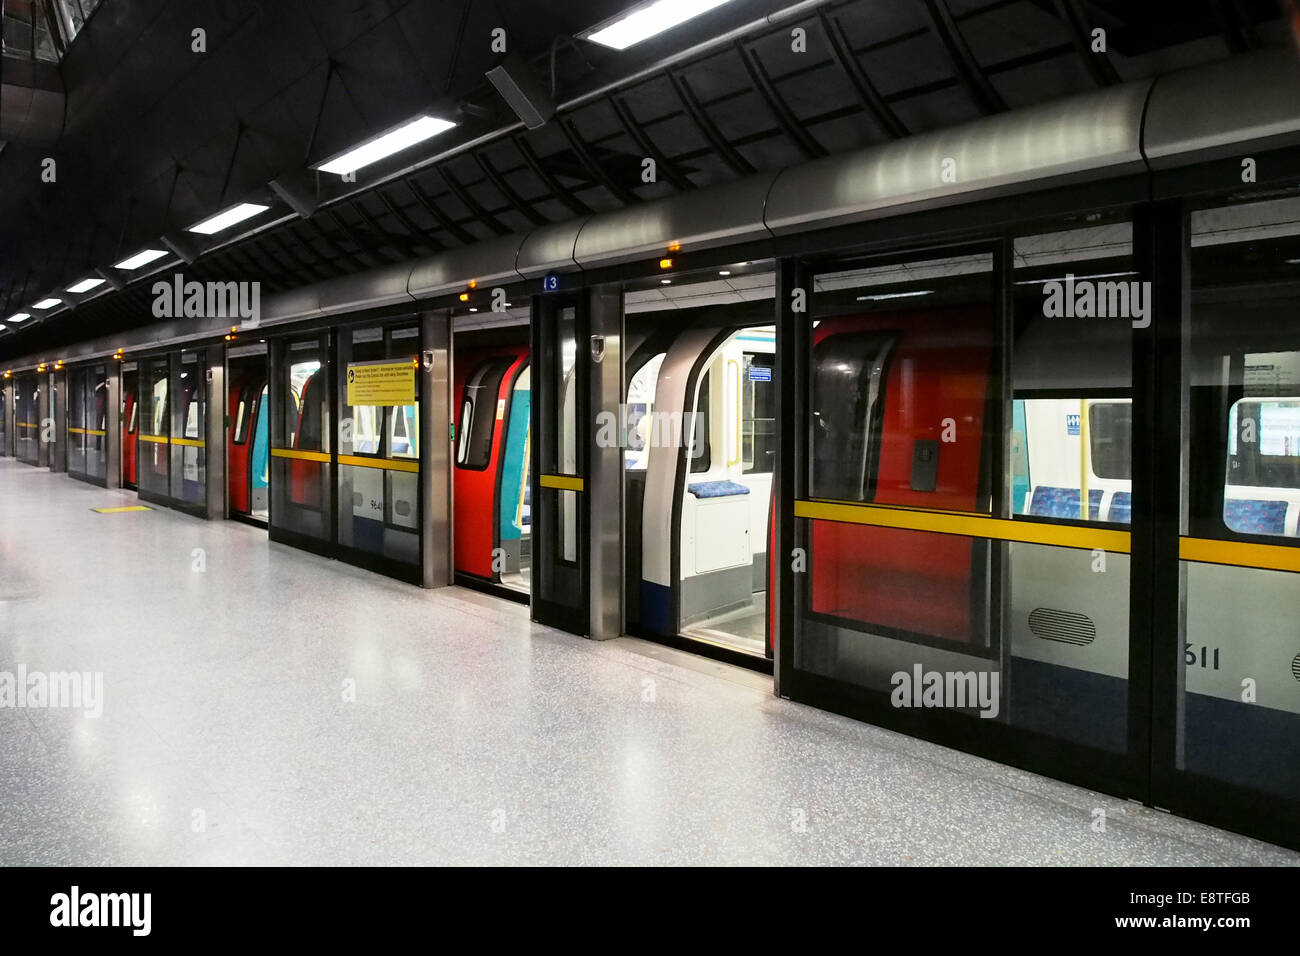 north greenwich tube stock photos north greenwich tube. Black Bedroom Furniture Sets. Home Design Ideas